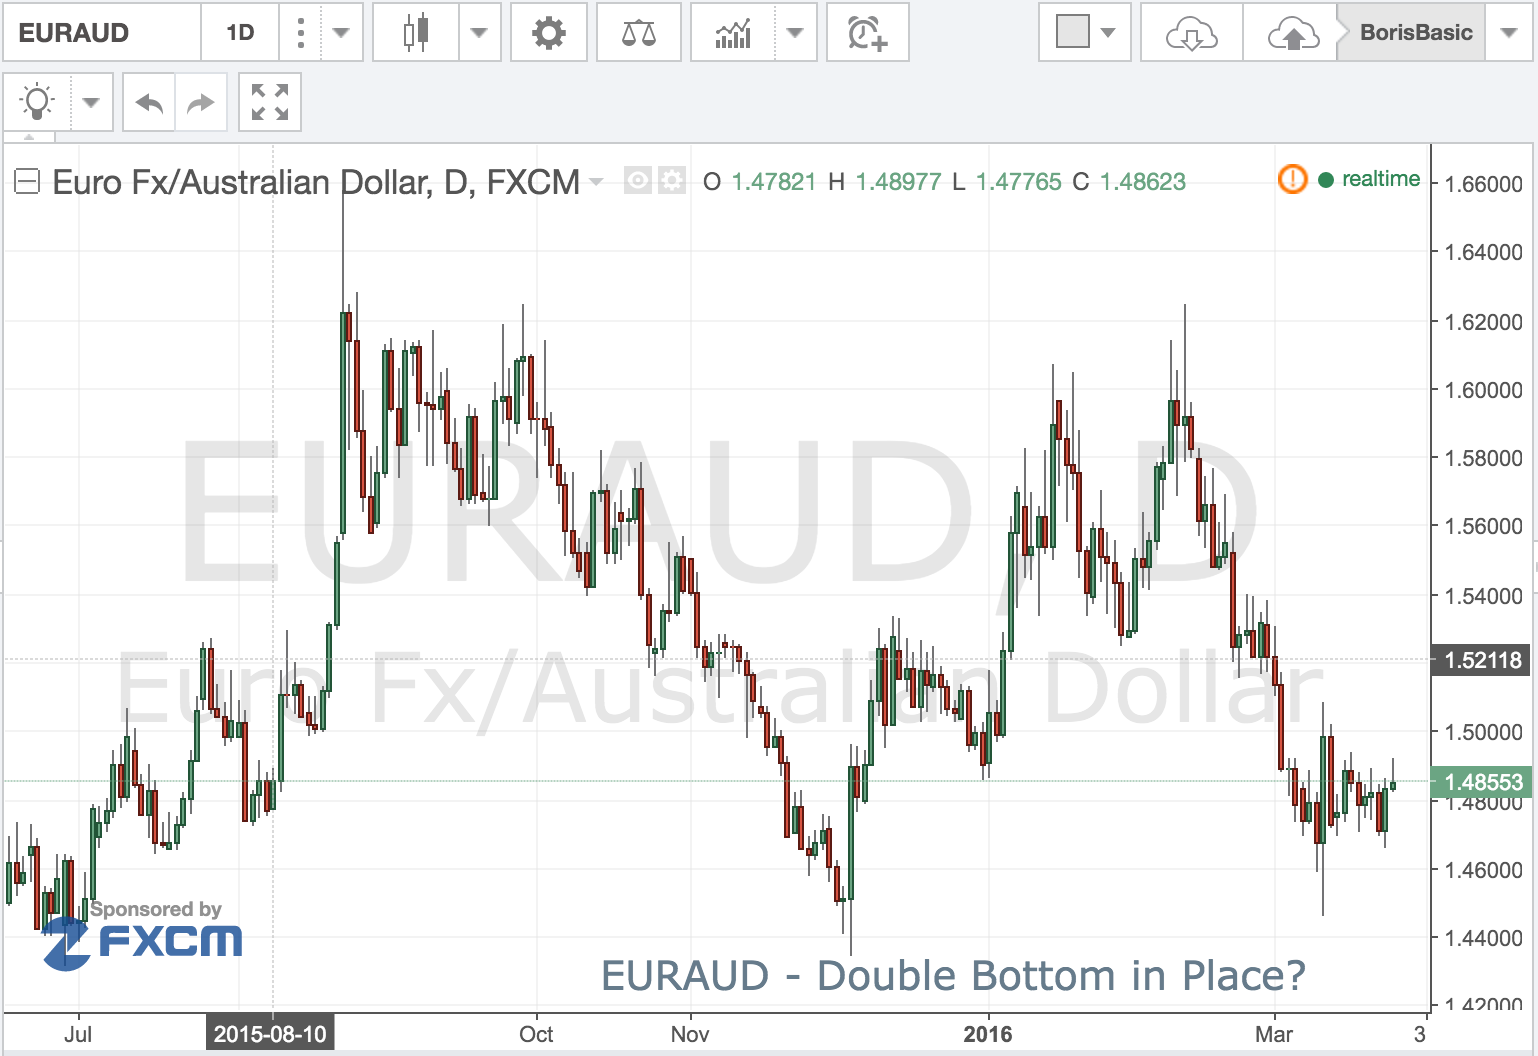 EURAUD – Double Bottom in Place?